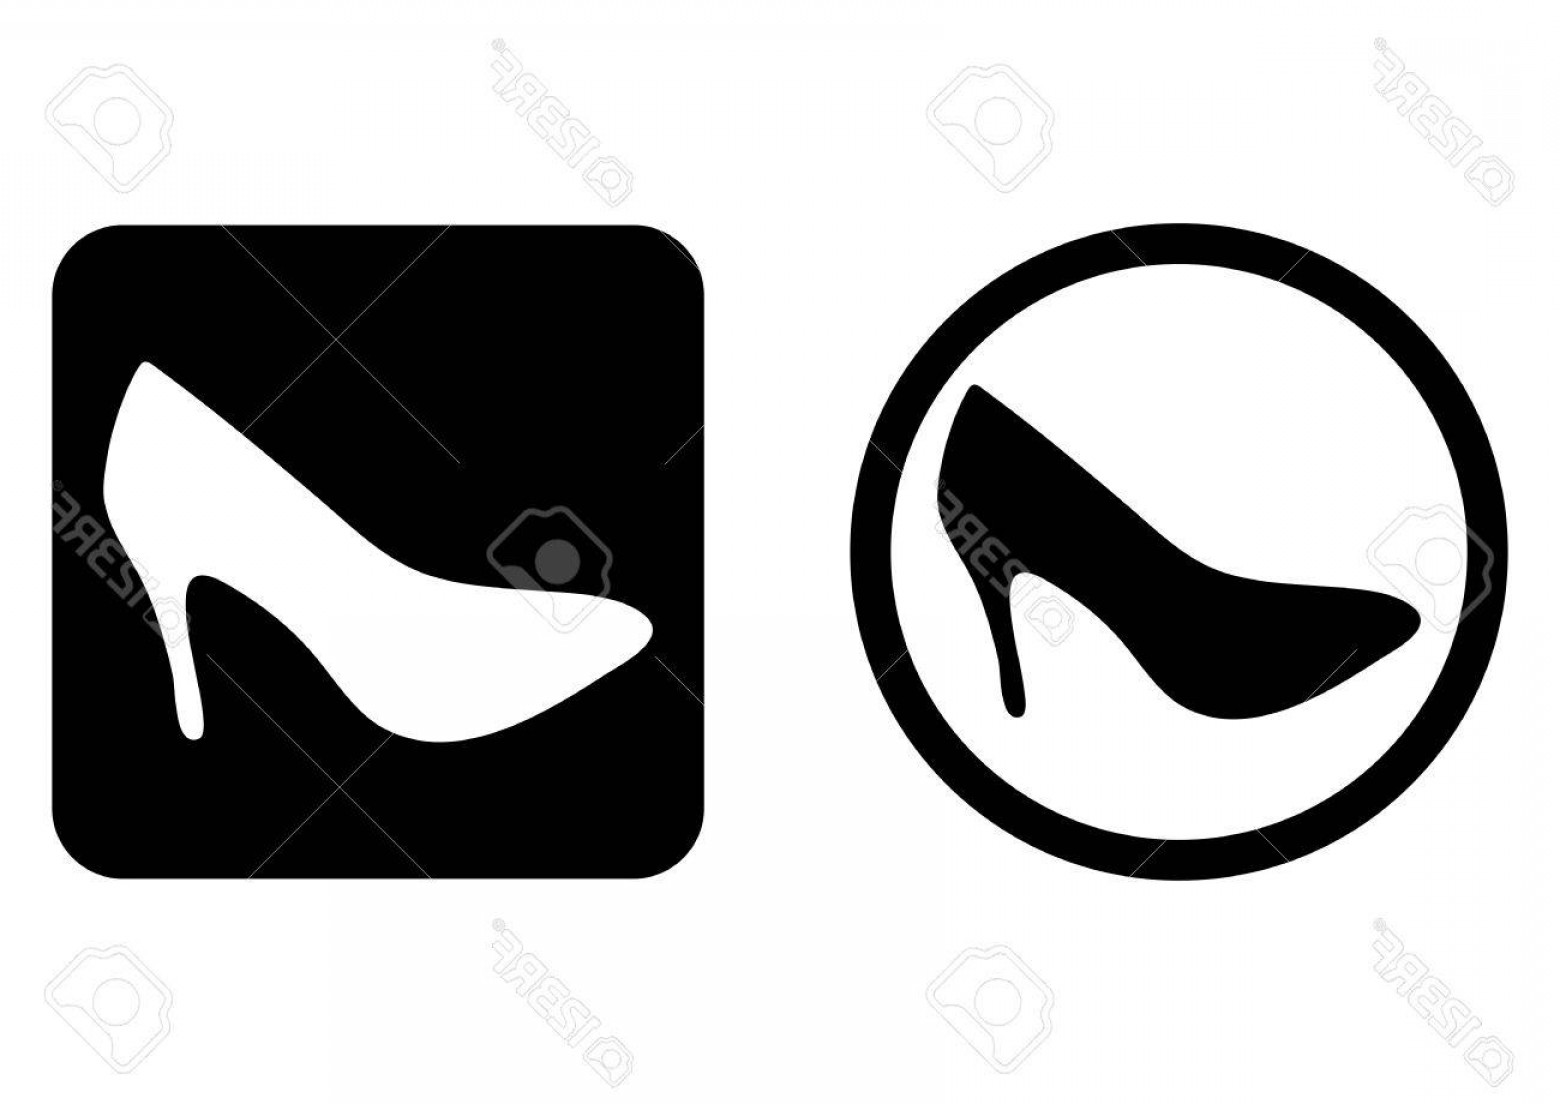 Silhouette Hee High Vector Lsitleetios: Photostock Vector Set Flat Button Icon Shoes Stilettos High Heels Two Flat Element Round Square Black White Isolated A